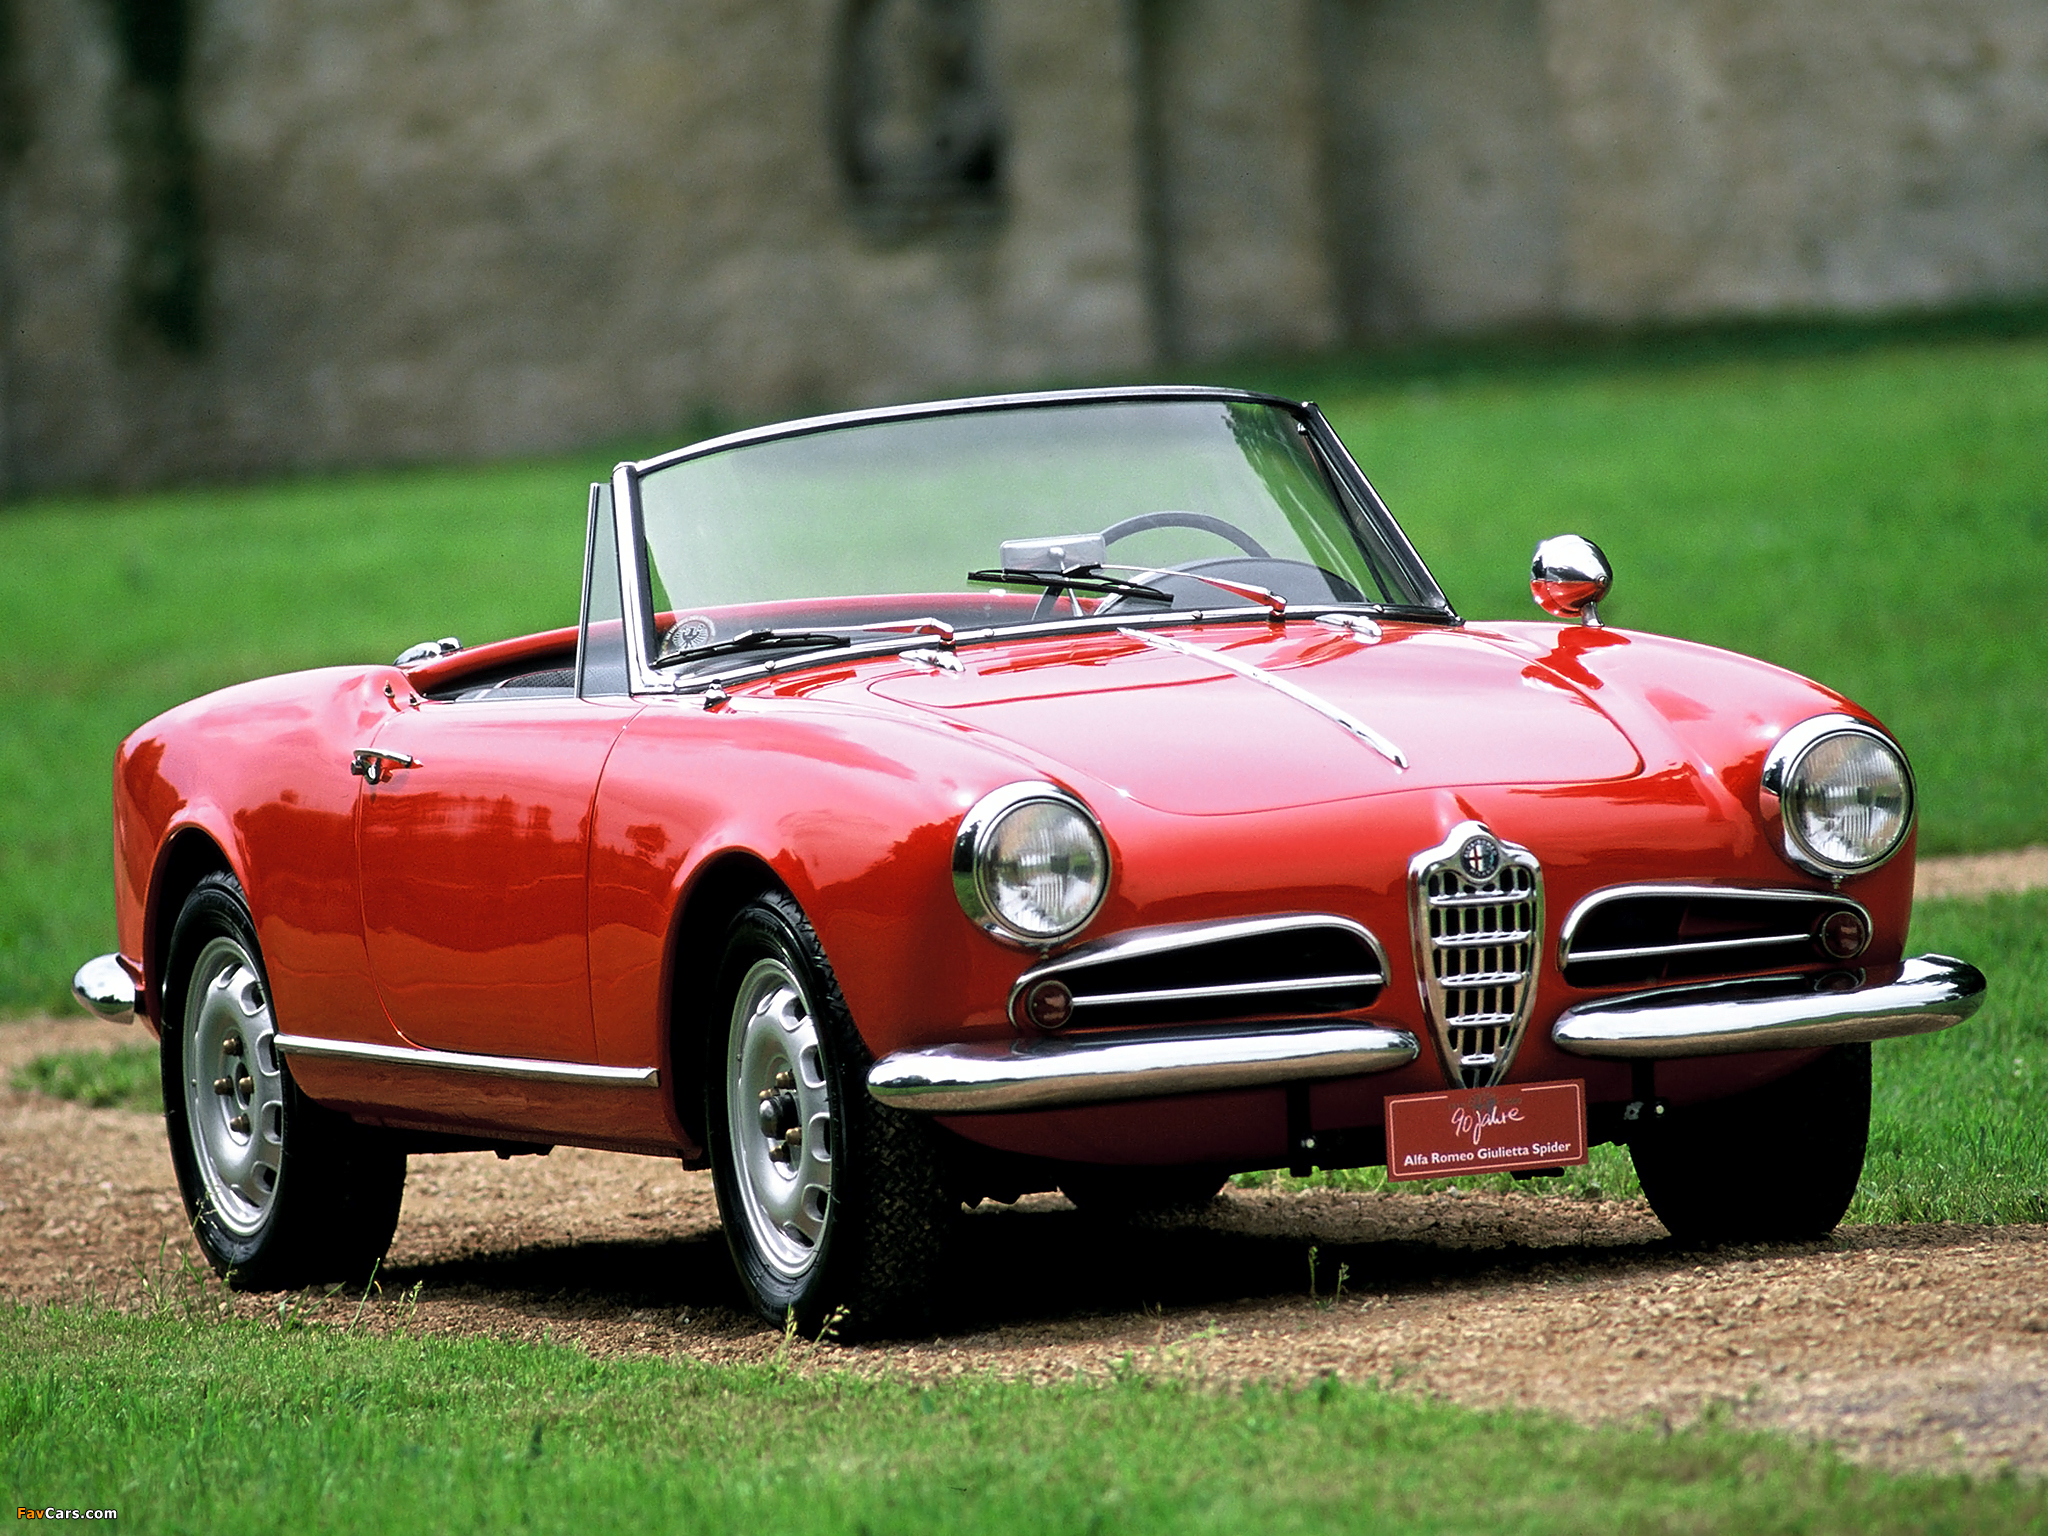 alfa romeo giulietta spider 750 101 1956 1962 images 2048x1536. Black Bedroom Furniture Sets. Home Design Ideas